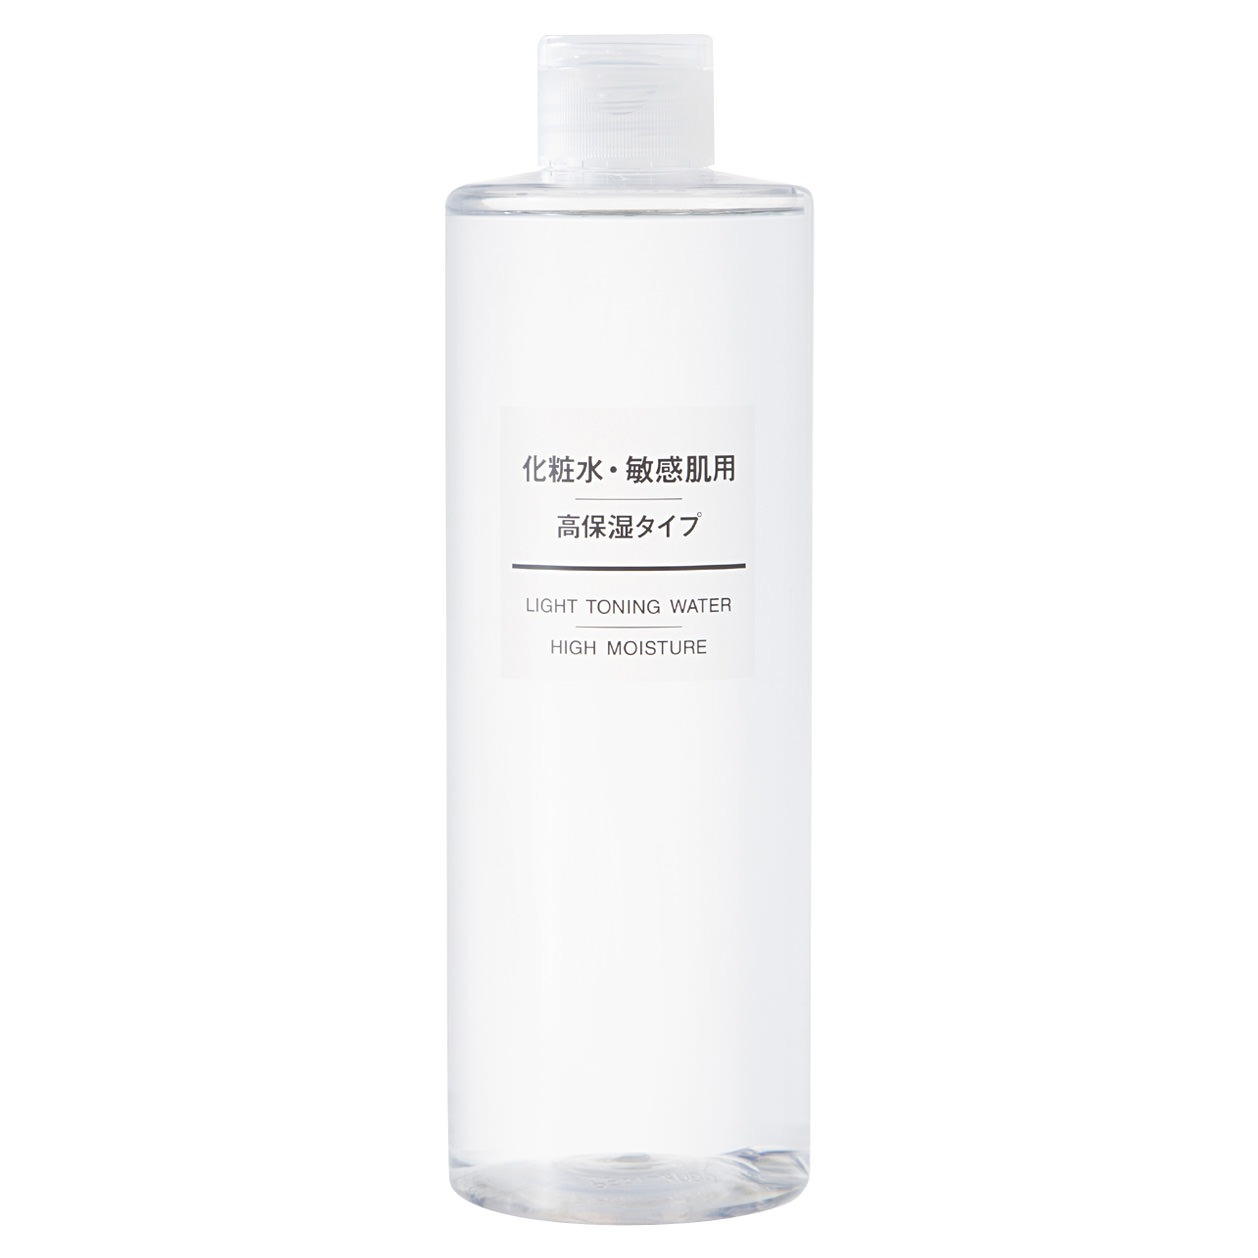 Muji Sensitive Skin Toning Water - High Moisture